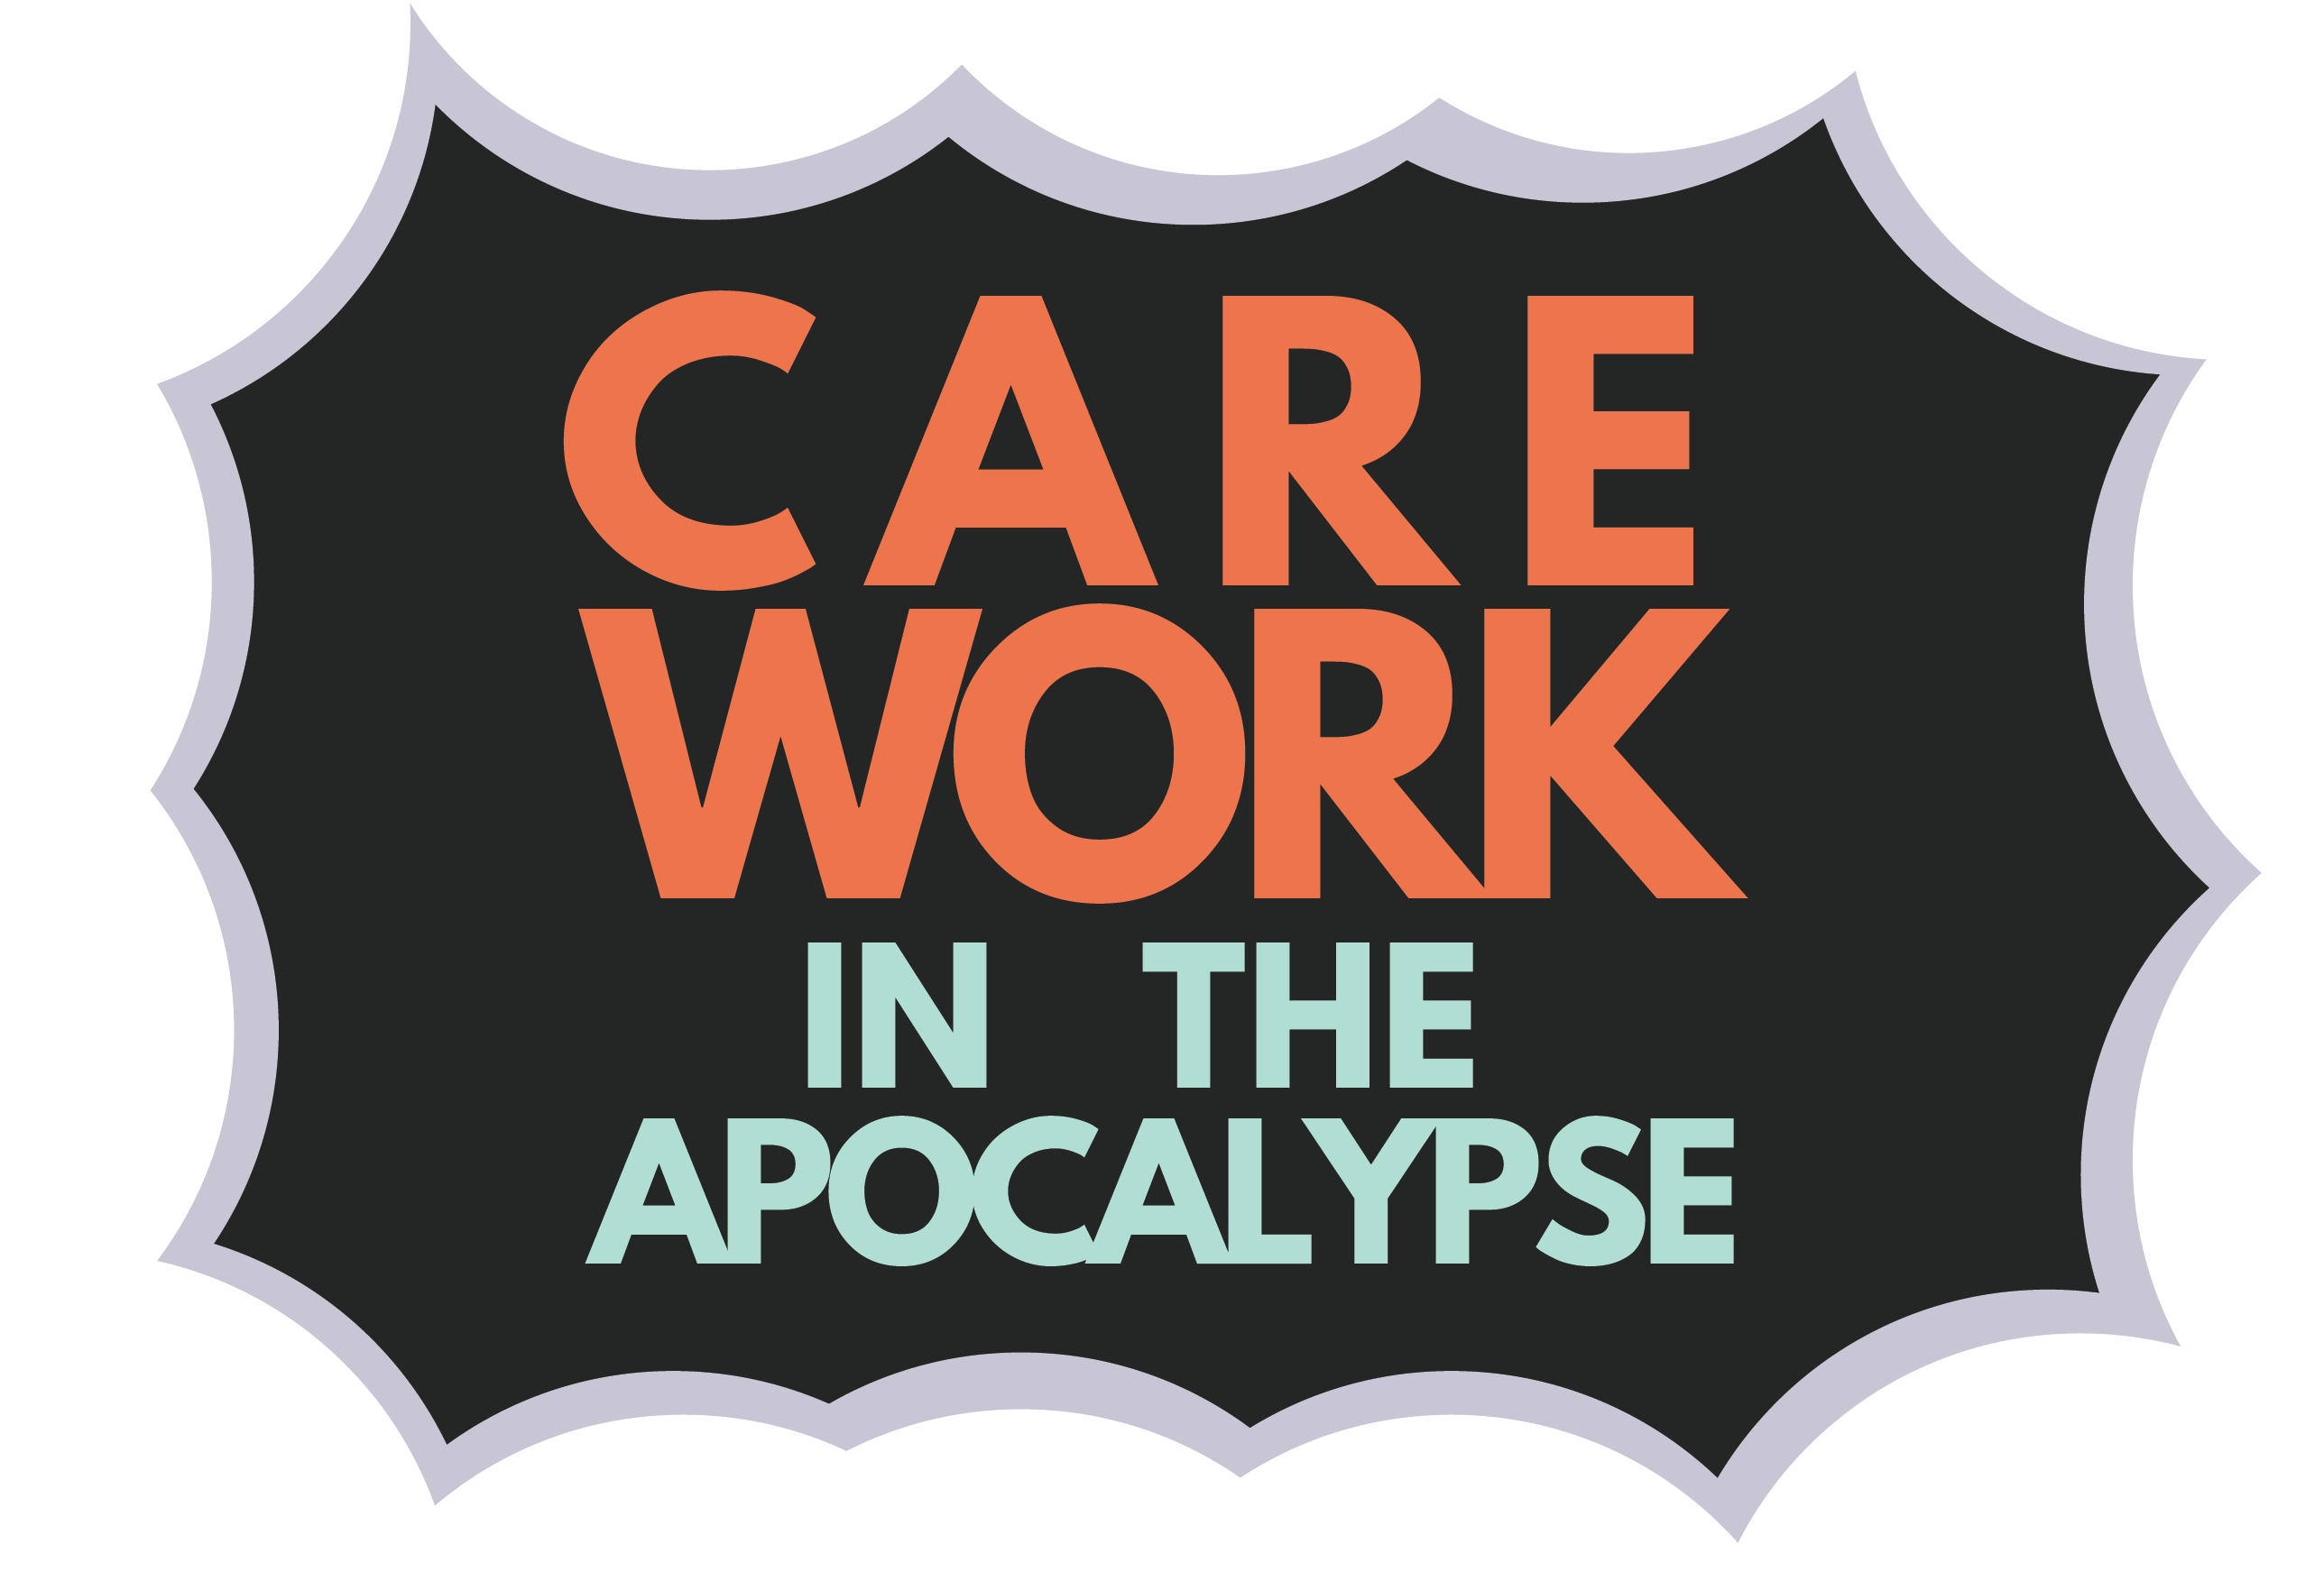 Care Work in the Apocalypse